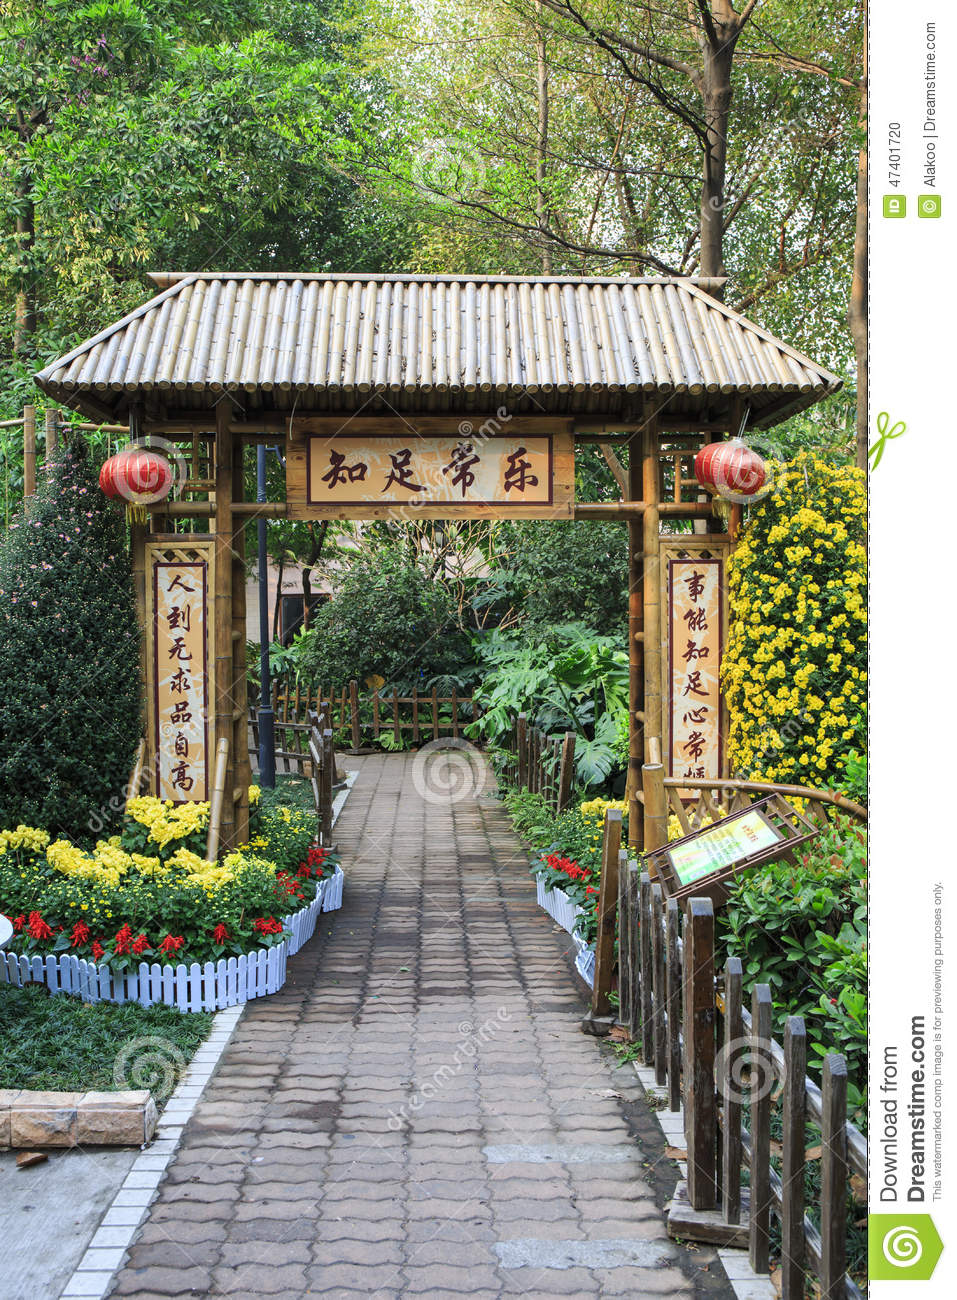 Bamboo Door With Chinese Antithetical Couplet And Lanterns